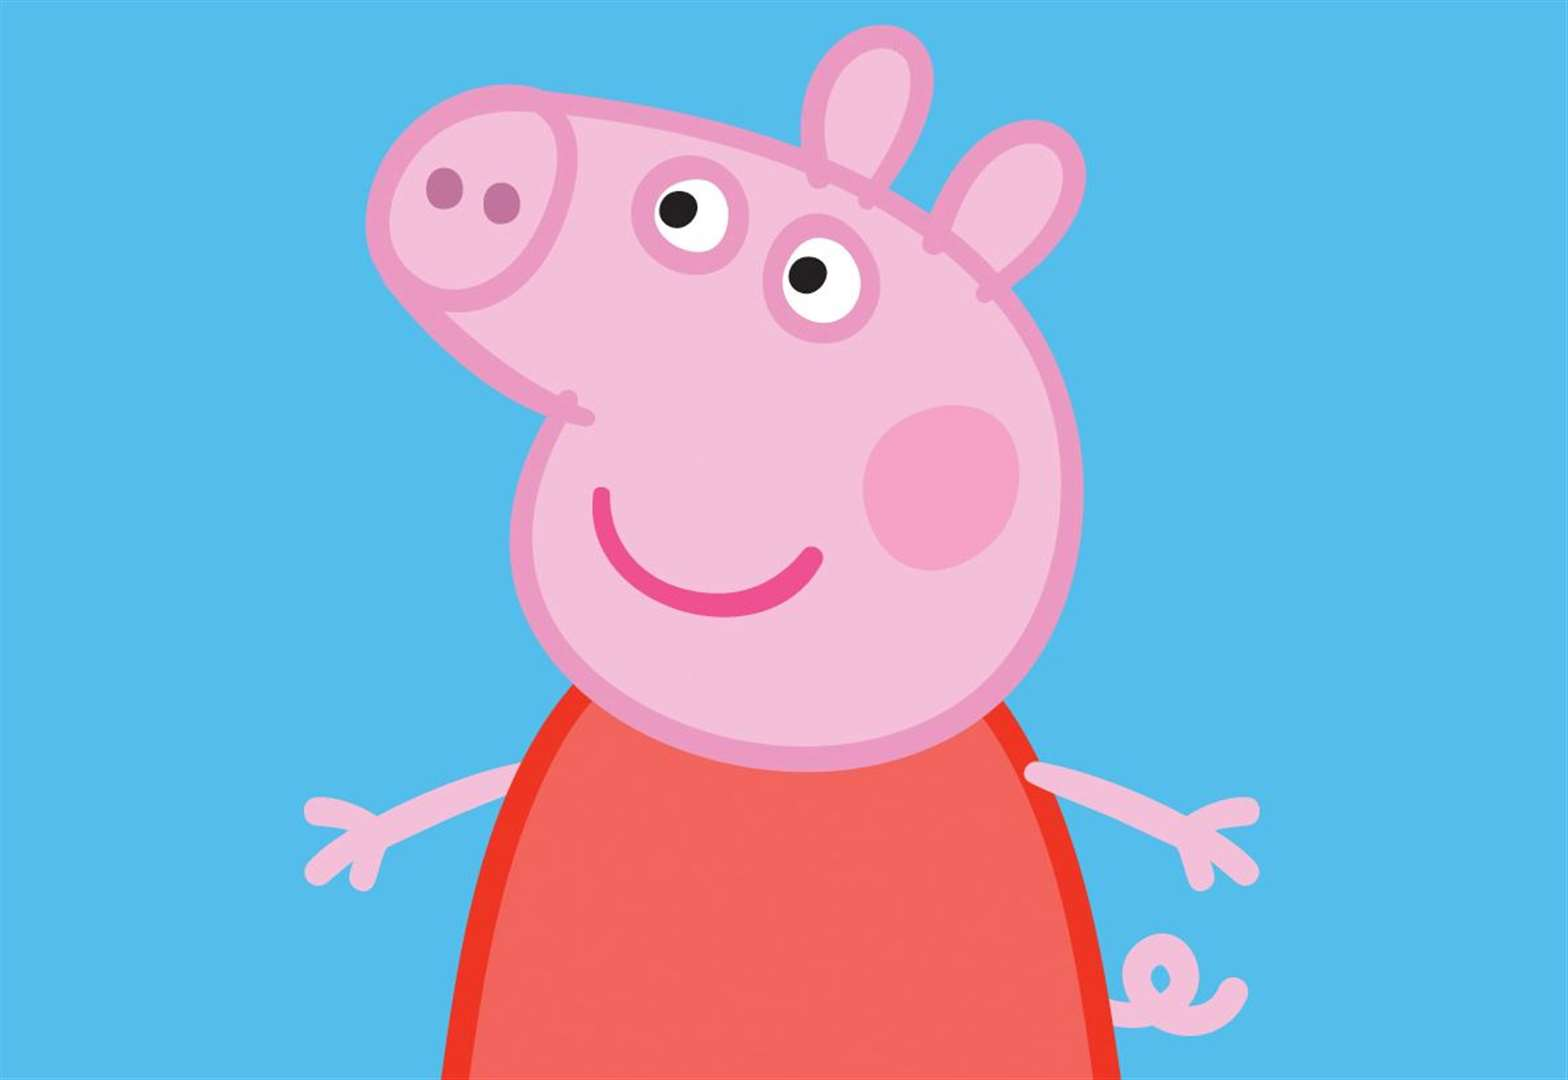 Peppa Pig meet and greet in Bury St Edmunds attracts an estimated 800 people